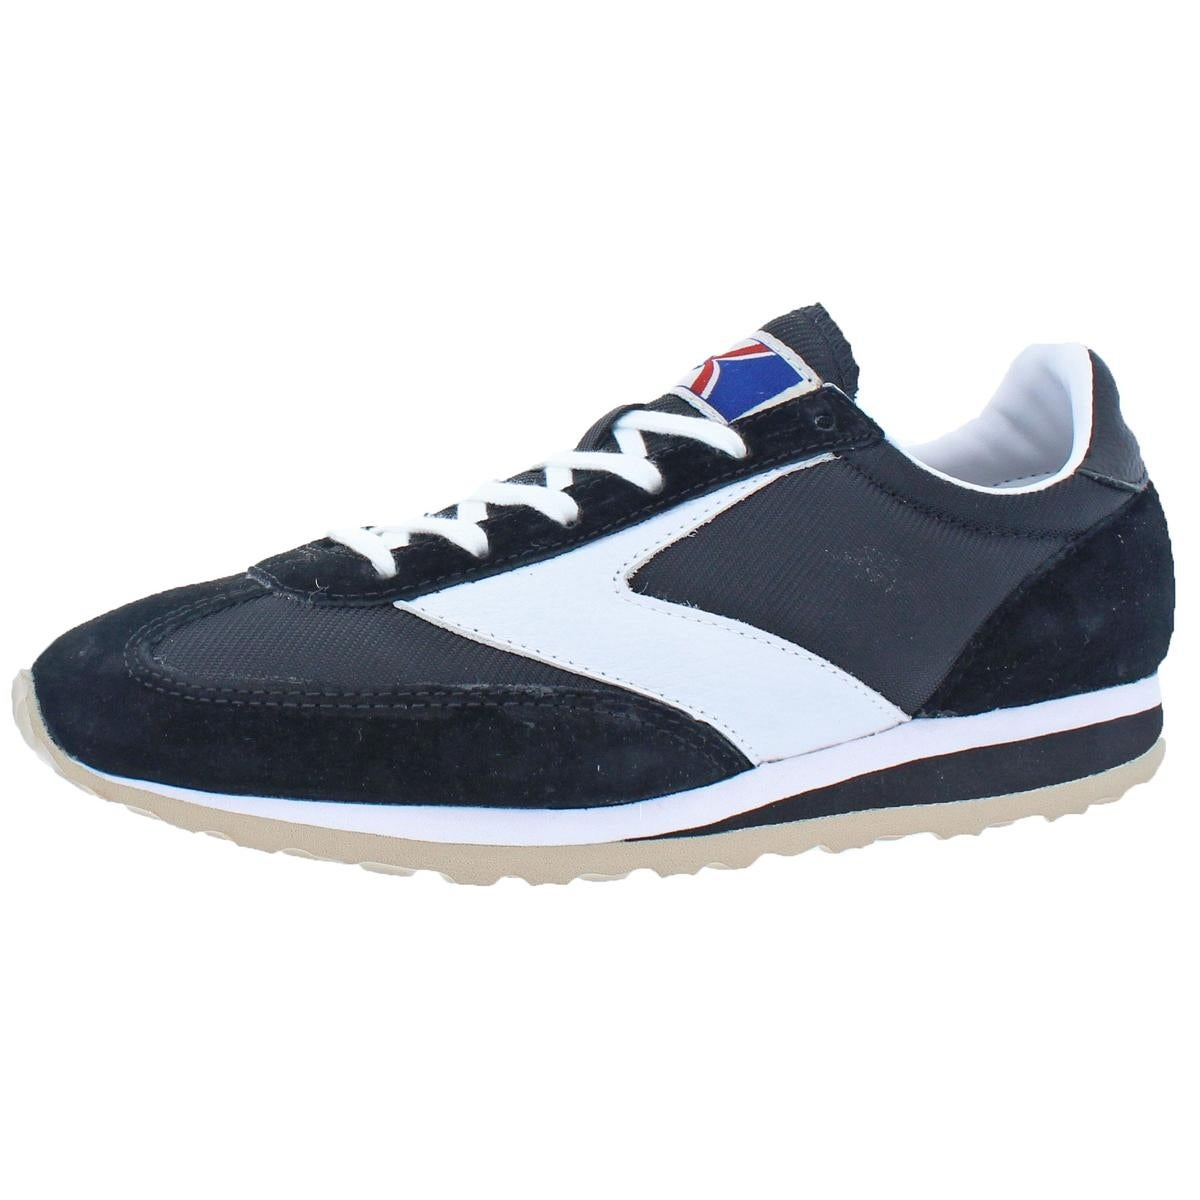 e260083f4ea3a Shop Brooks Womens Vanguard Running Shoes Retro Low Top - Free Shipping  Today - Overstock - 22132721